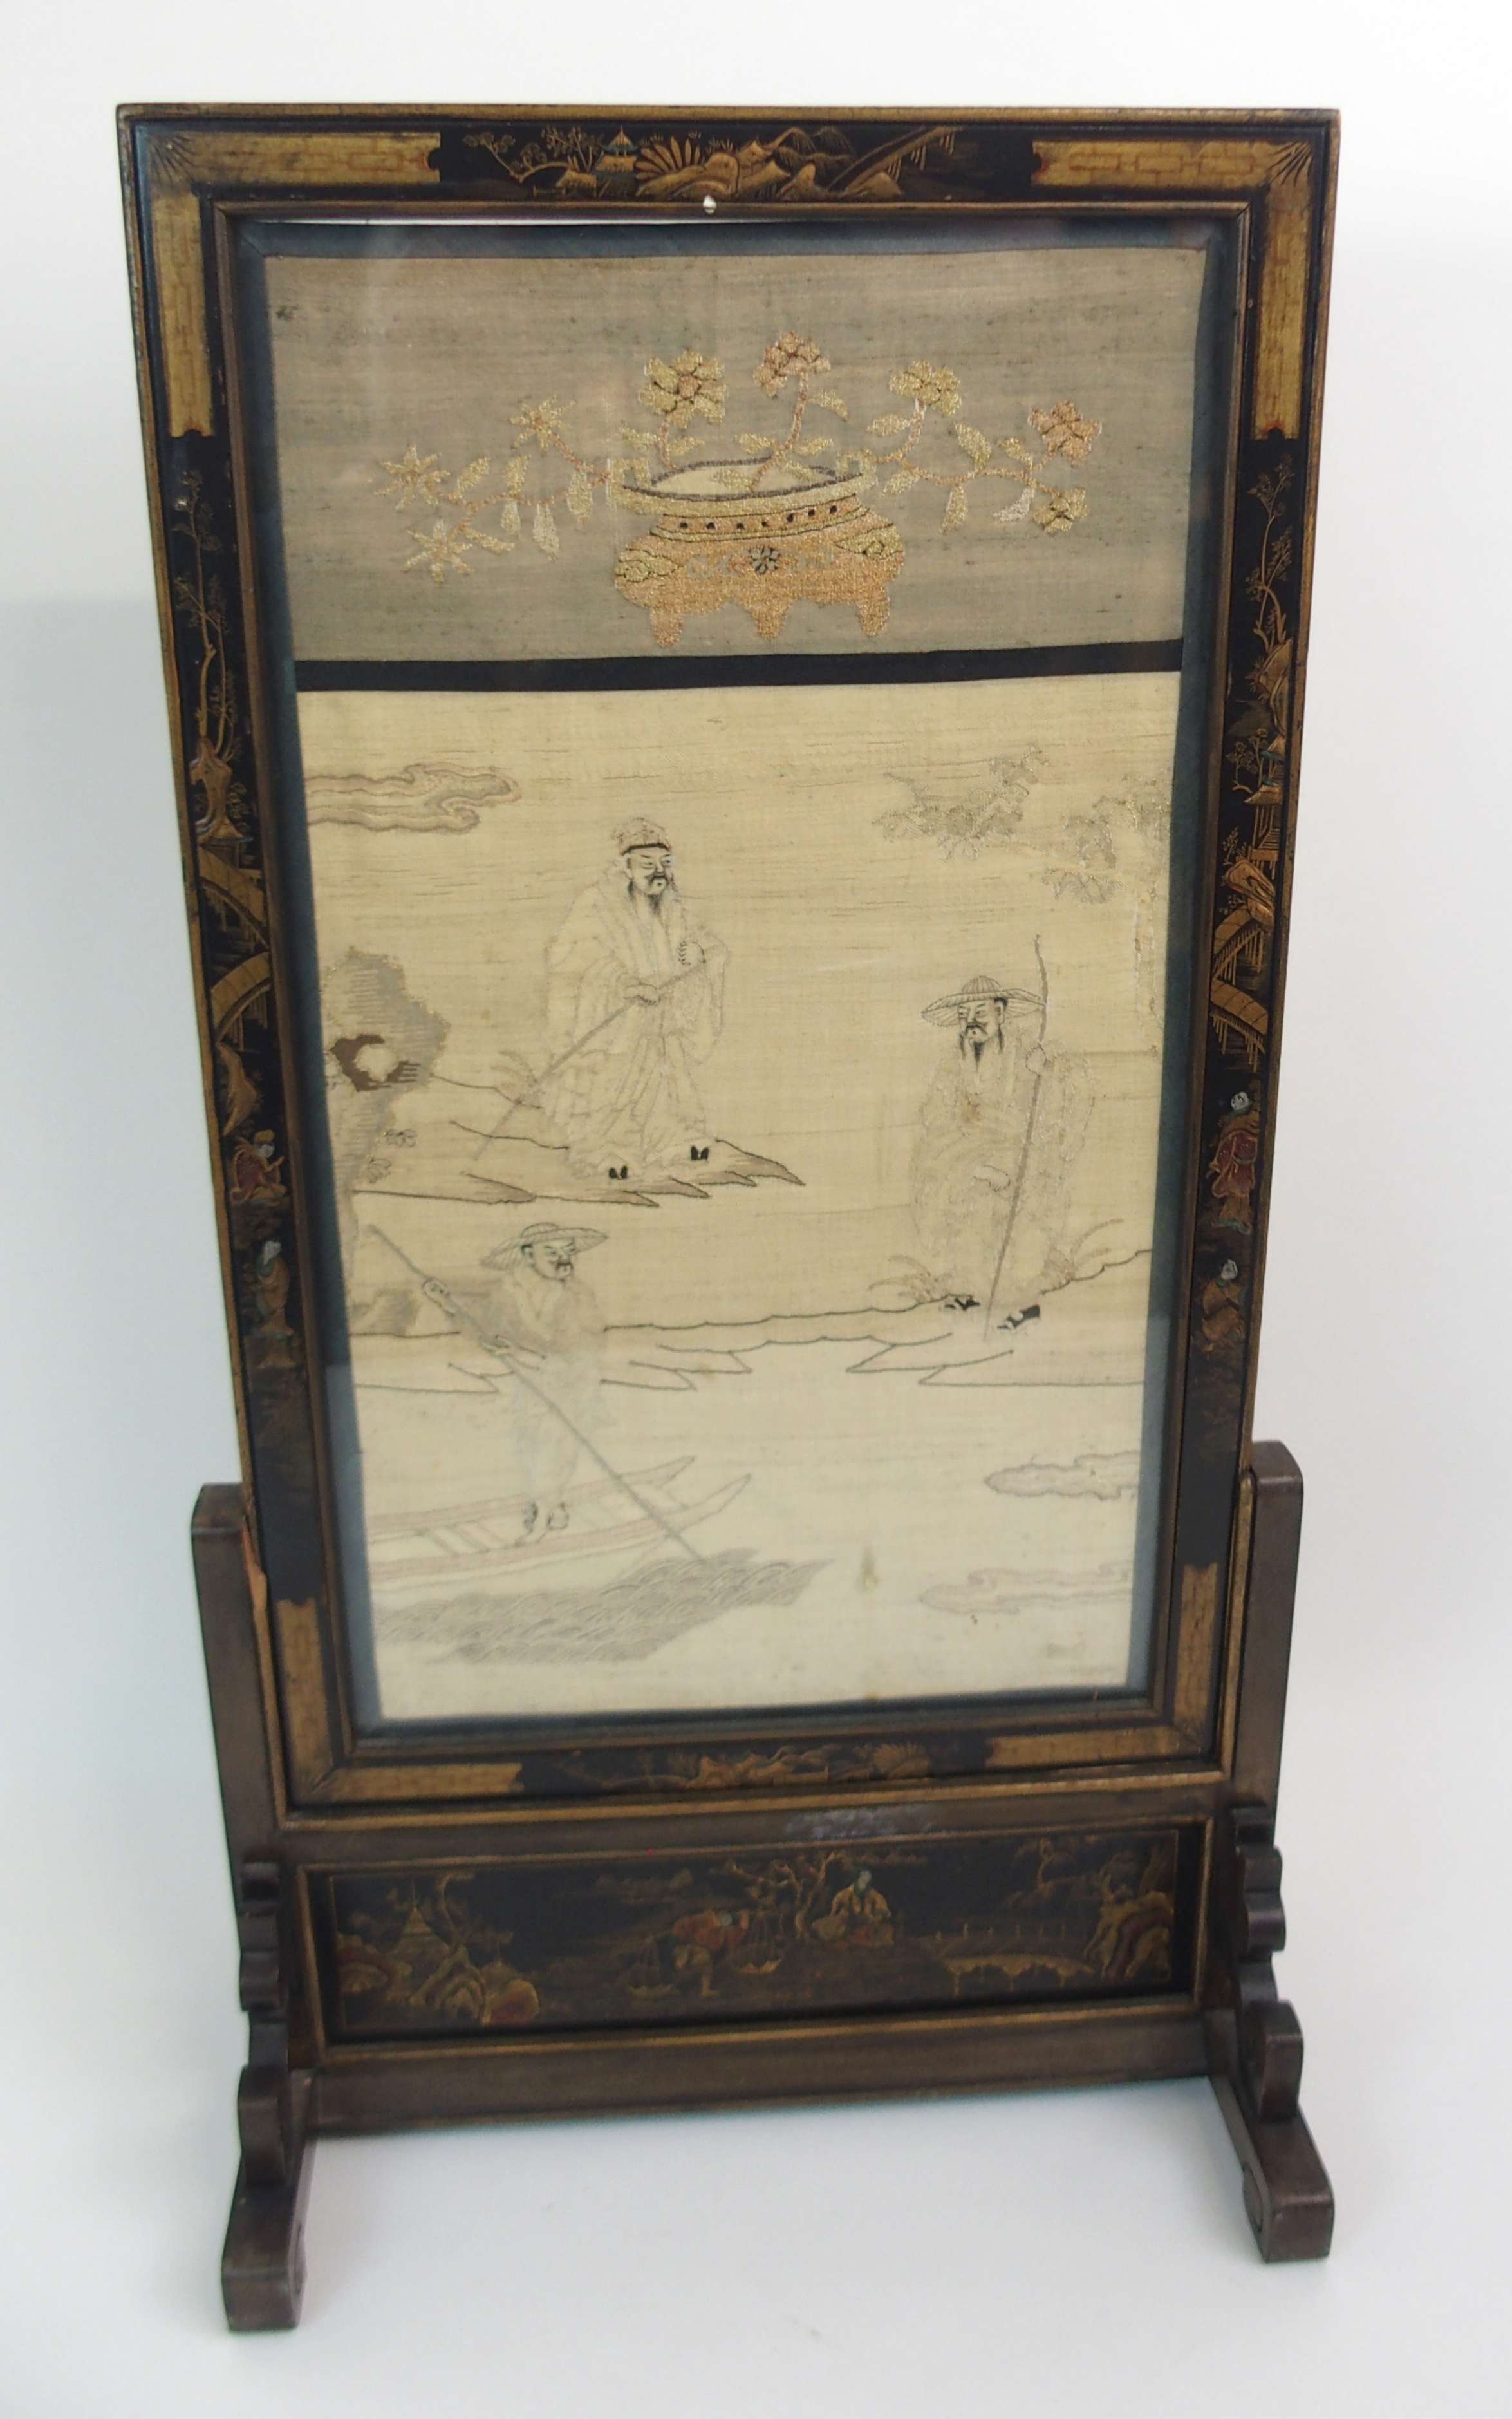 Lot 19 - A CHINESE SILK TABLE SCREEN woven with figures on islands and a sampan beneath a jardiniere of